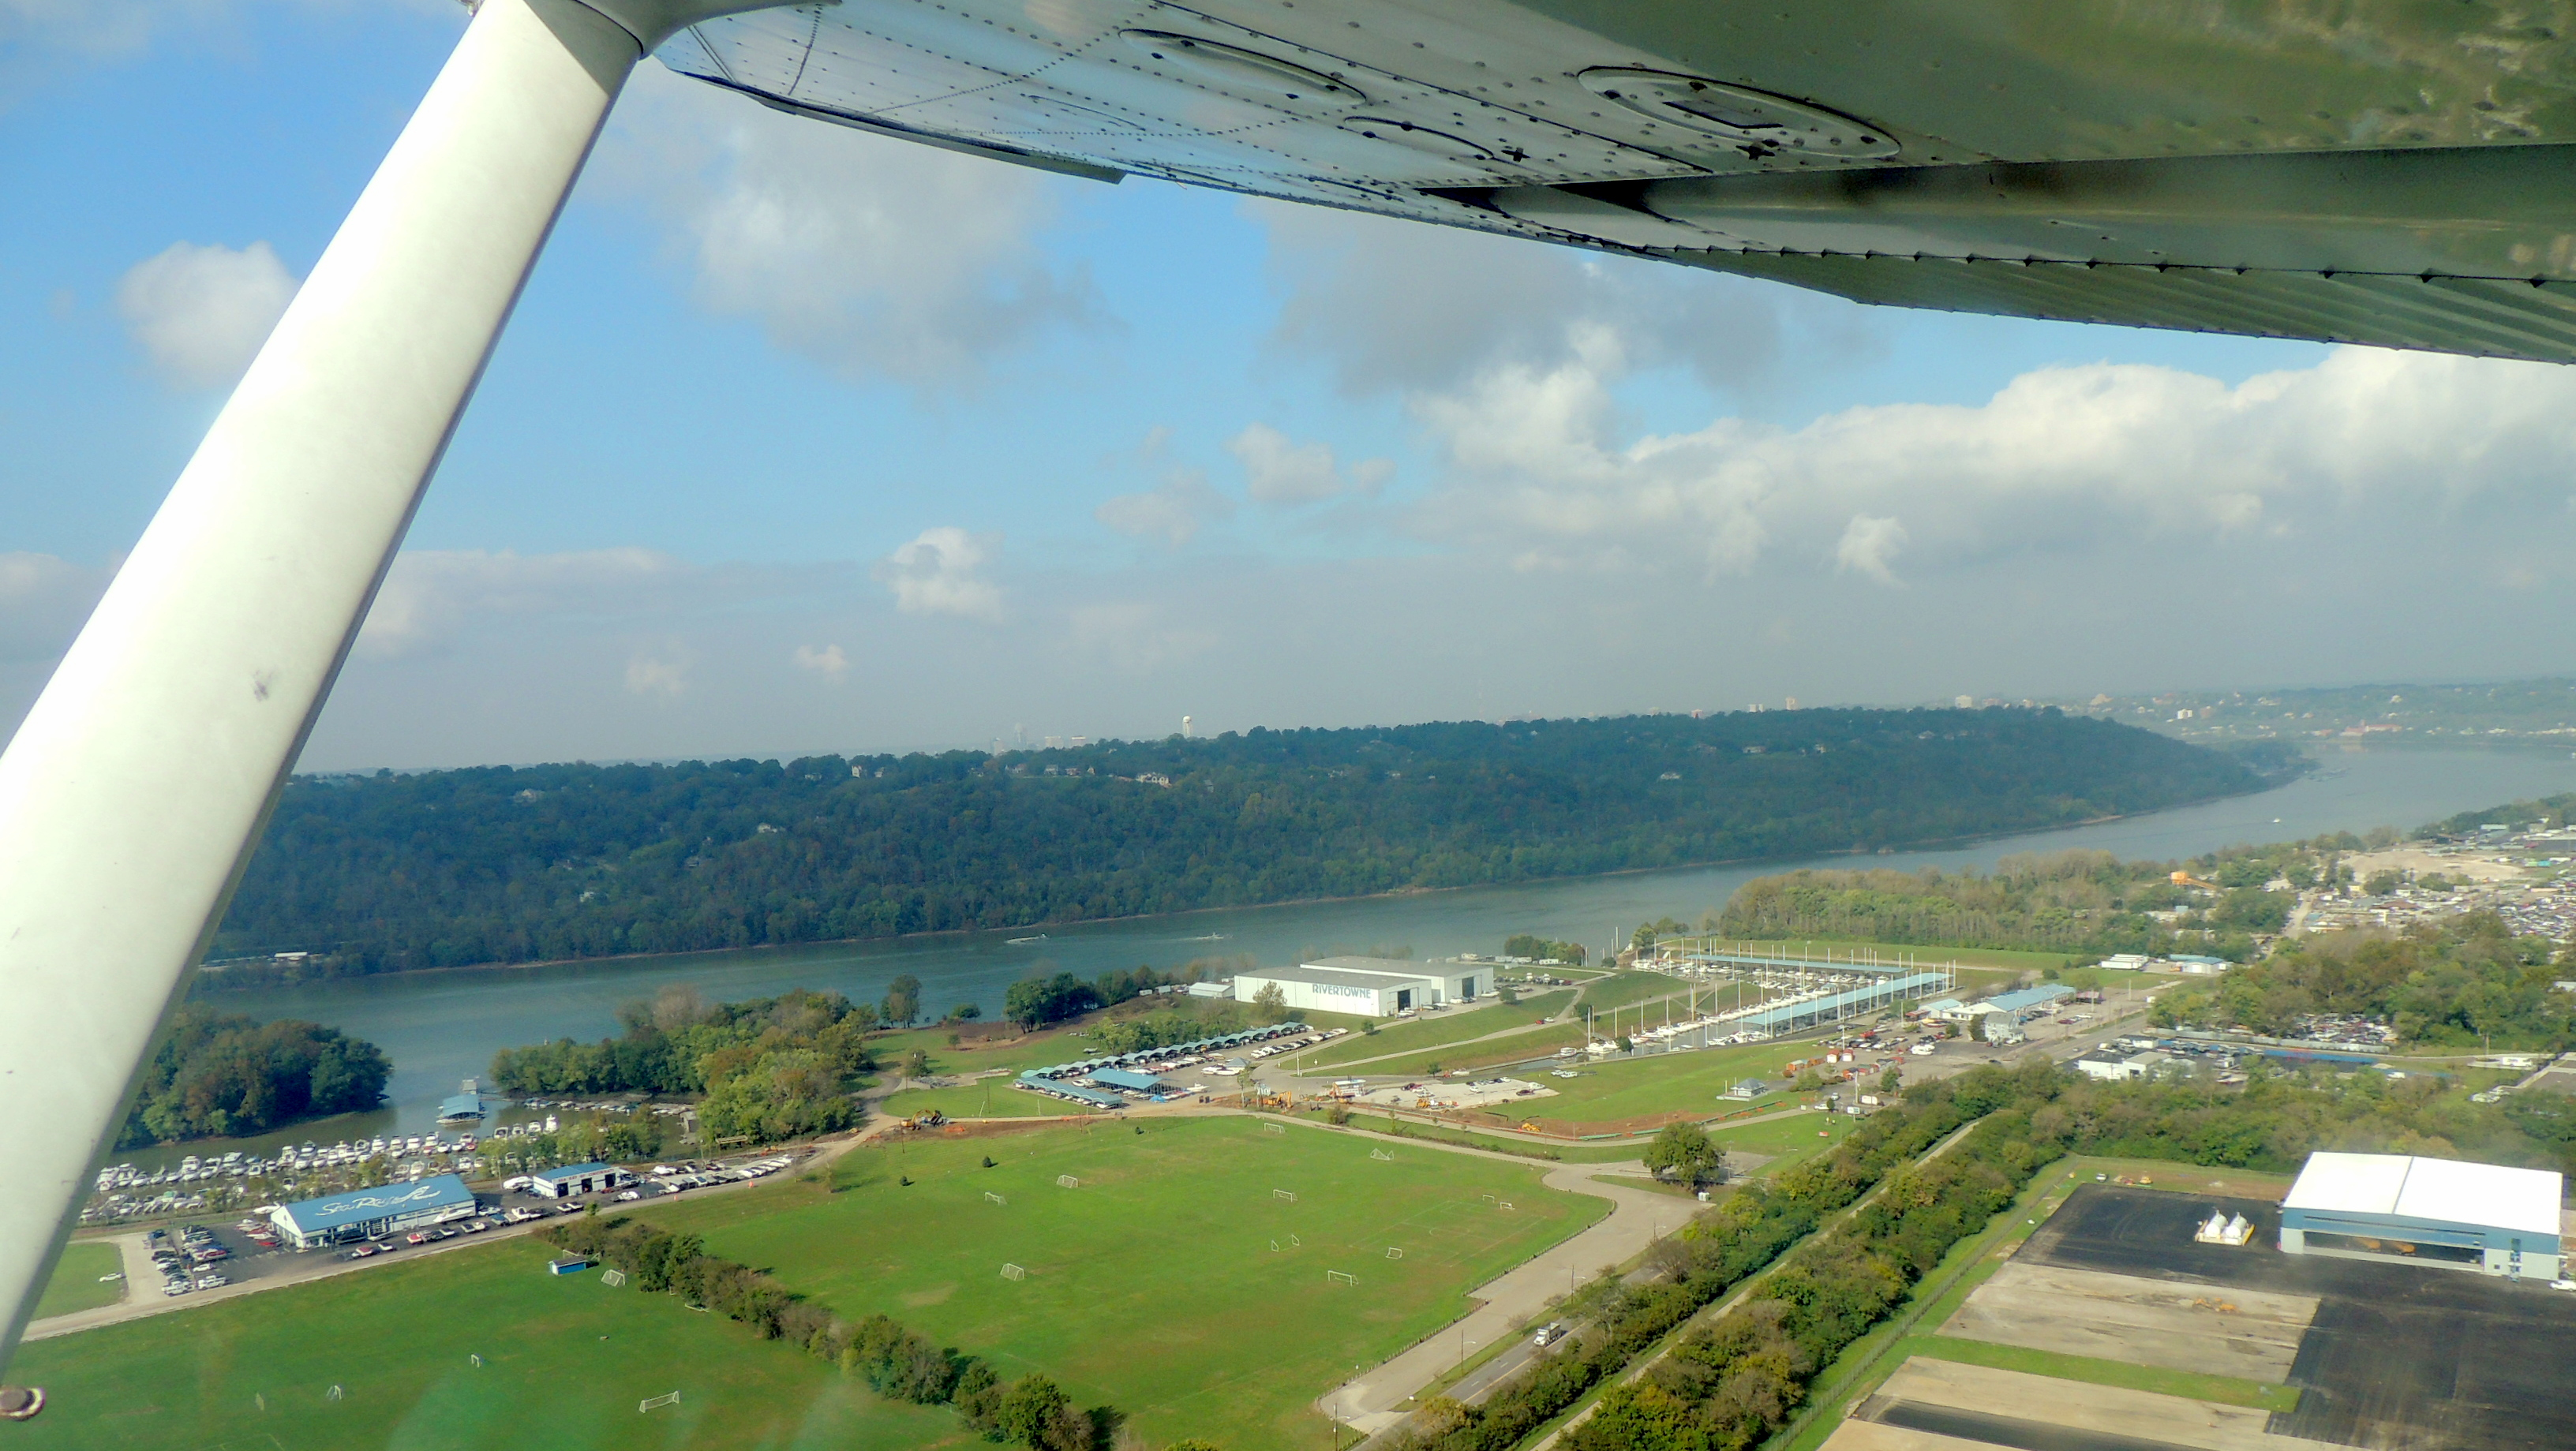 Departing Lunken Field (Cincinnati Ohio) heading for Stafford VA